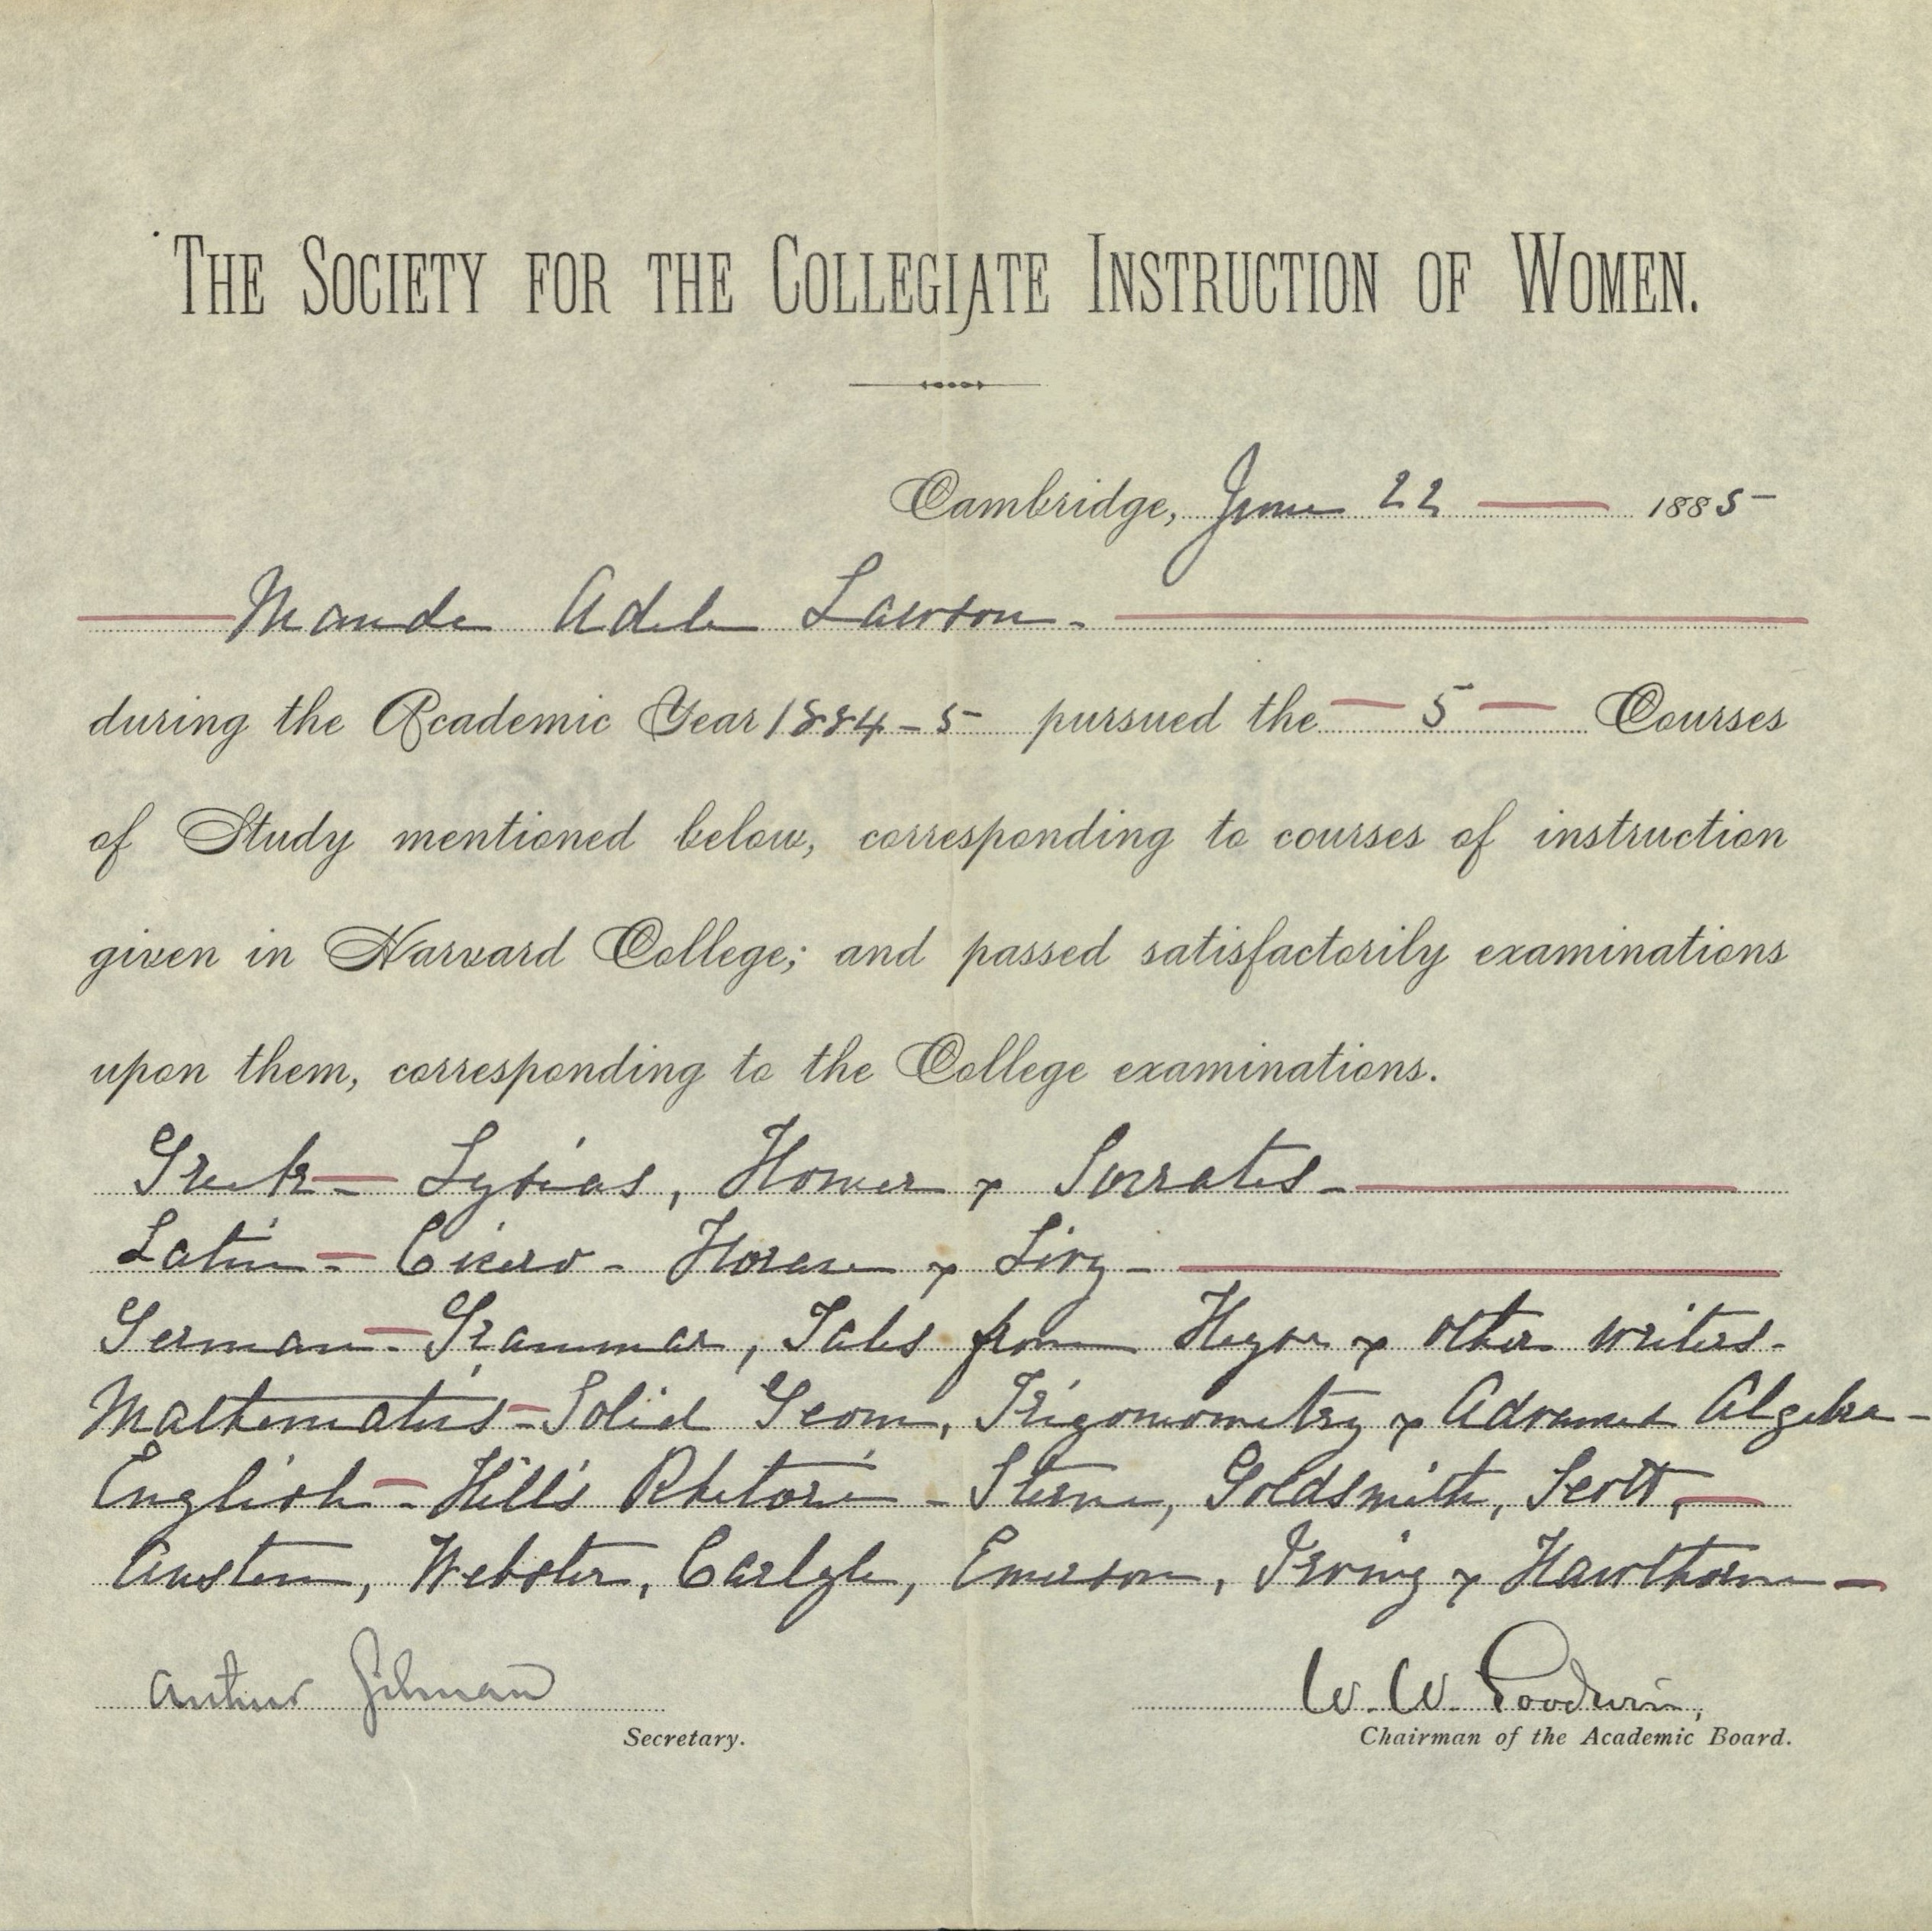 Society for the Collegiate Instruction of Women certificate